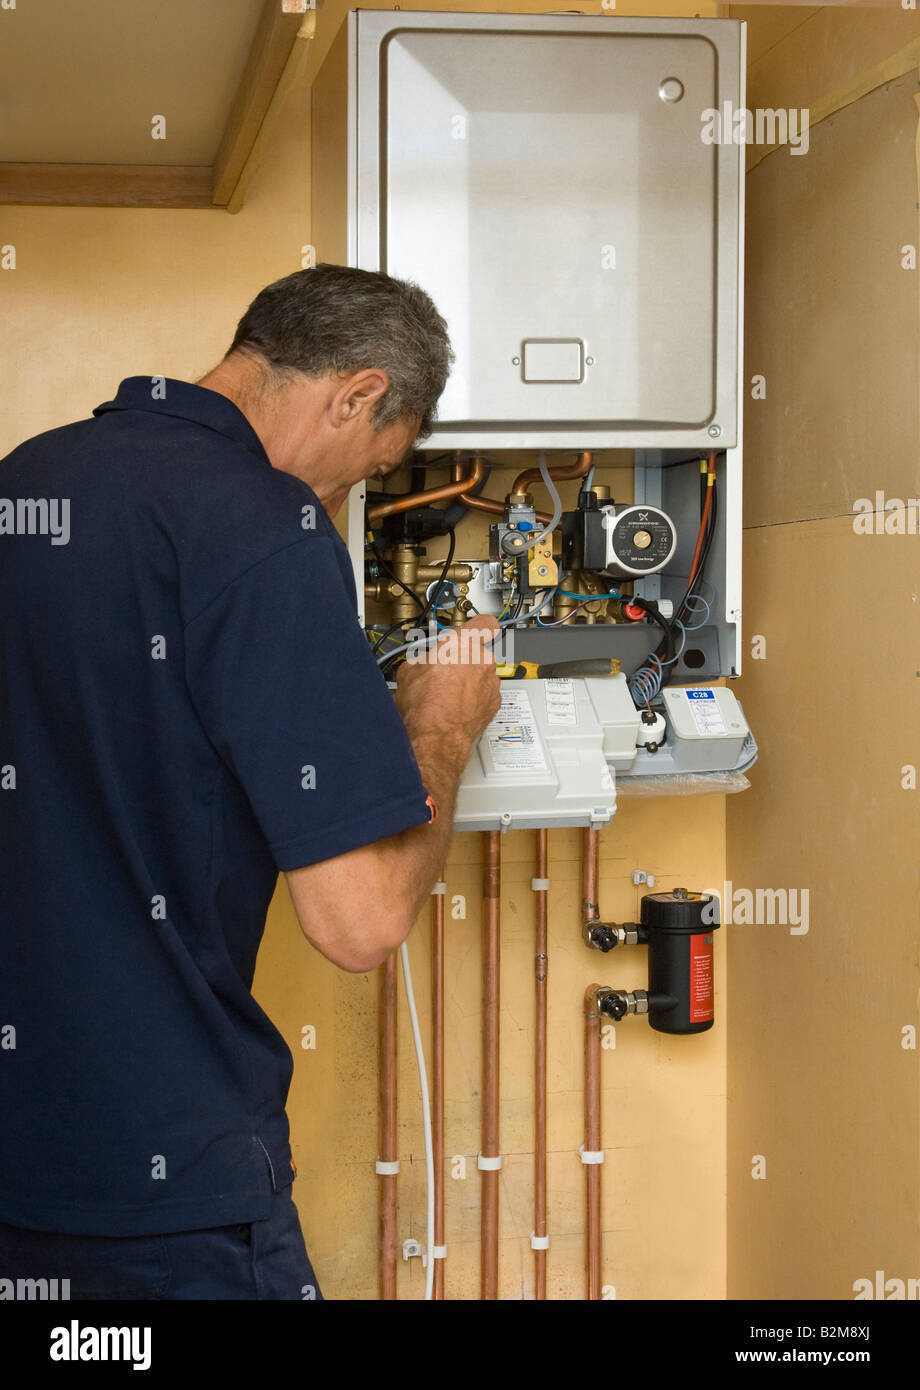 man working on a gas boiler Stock Photo: 18885738 - Alamy